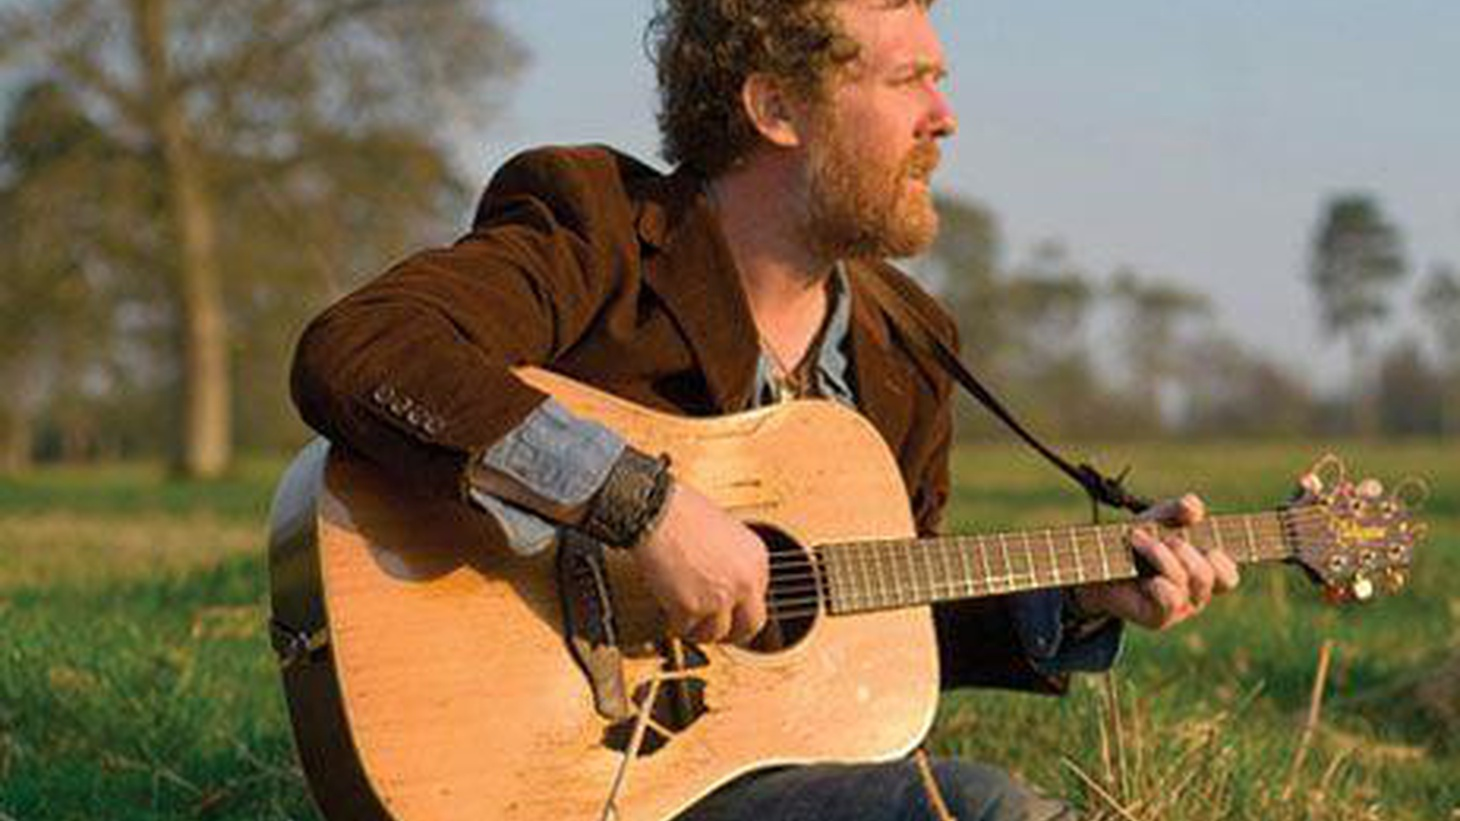 Glen Hansard has followed up an incredible solo album with an EP released late last year featuring three new songs.